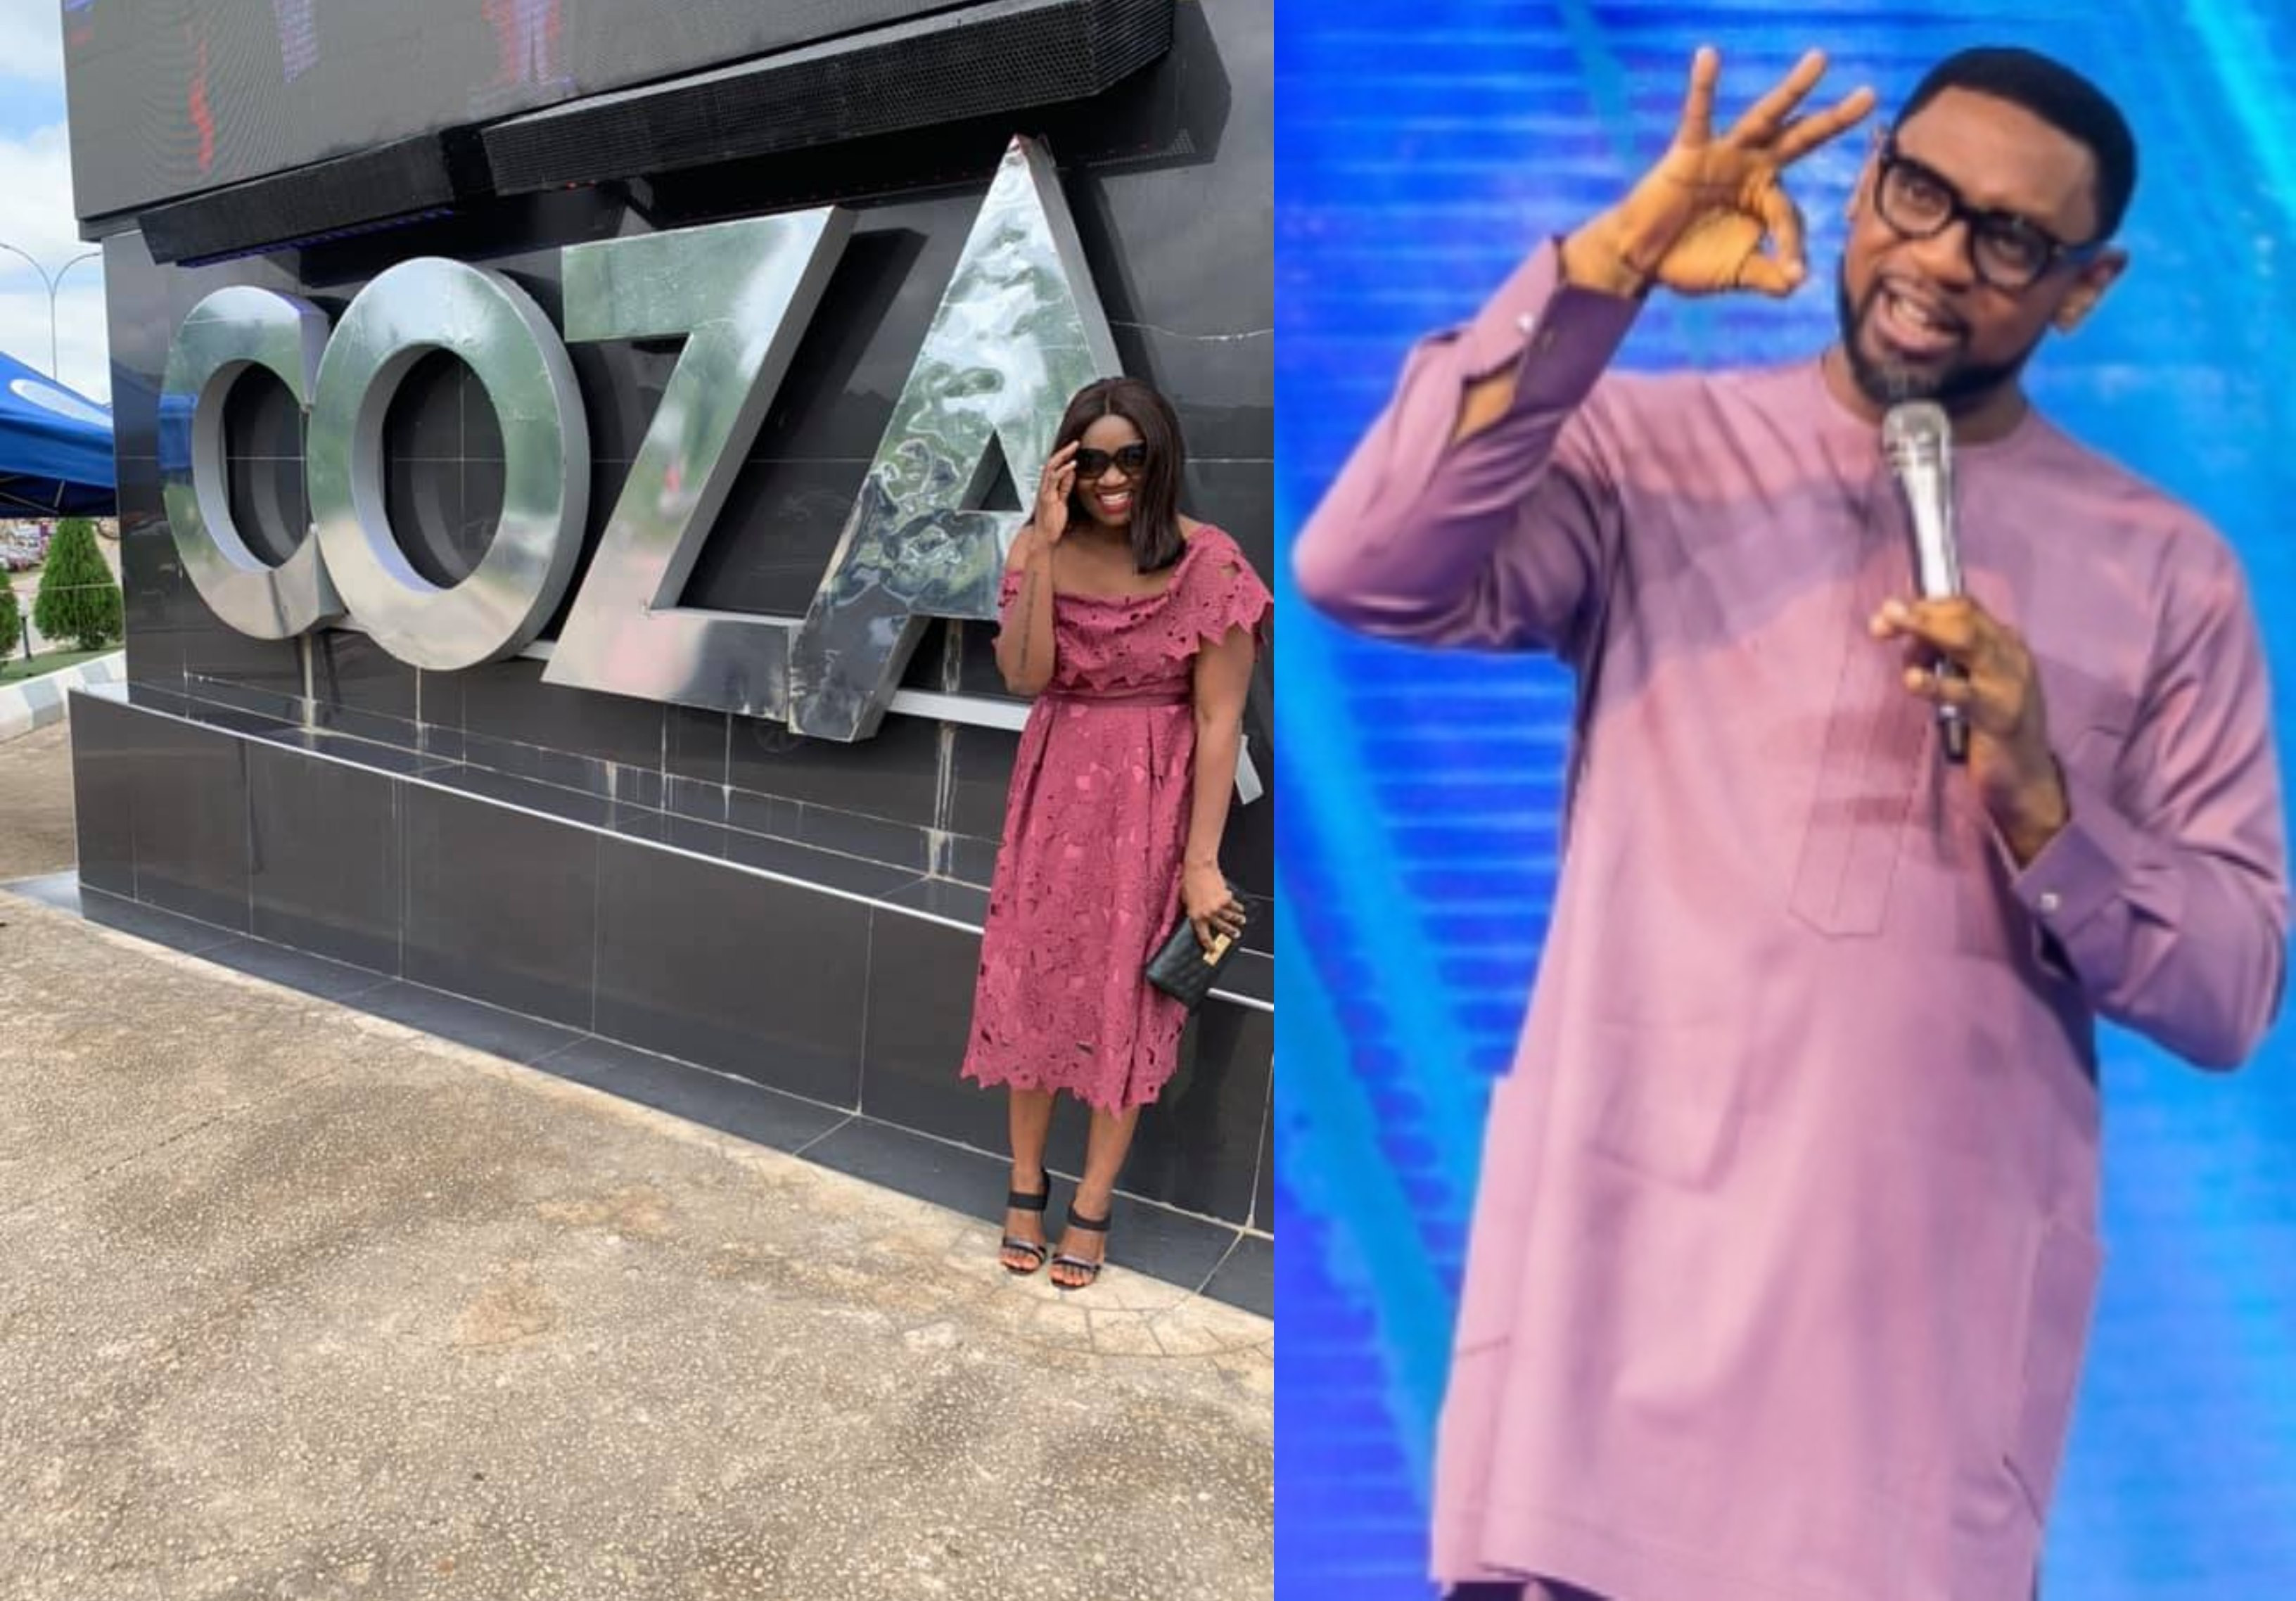 Ese Walter who first accused Pastor Fatoyinbo of sexual abuse reveals she recently attended COZA in disguise, shares her reason lindaikejisblog